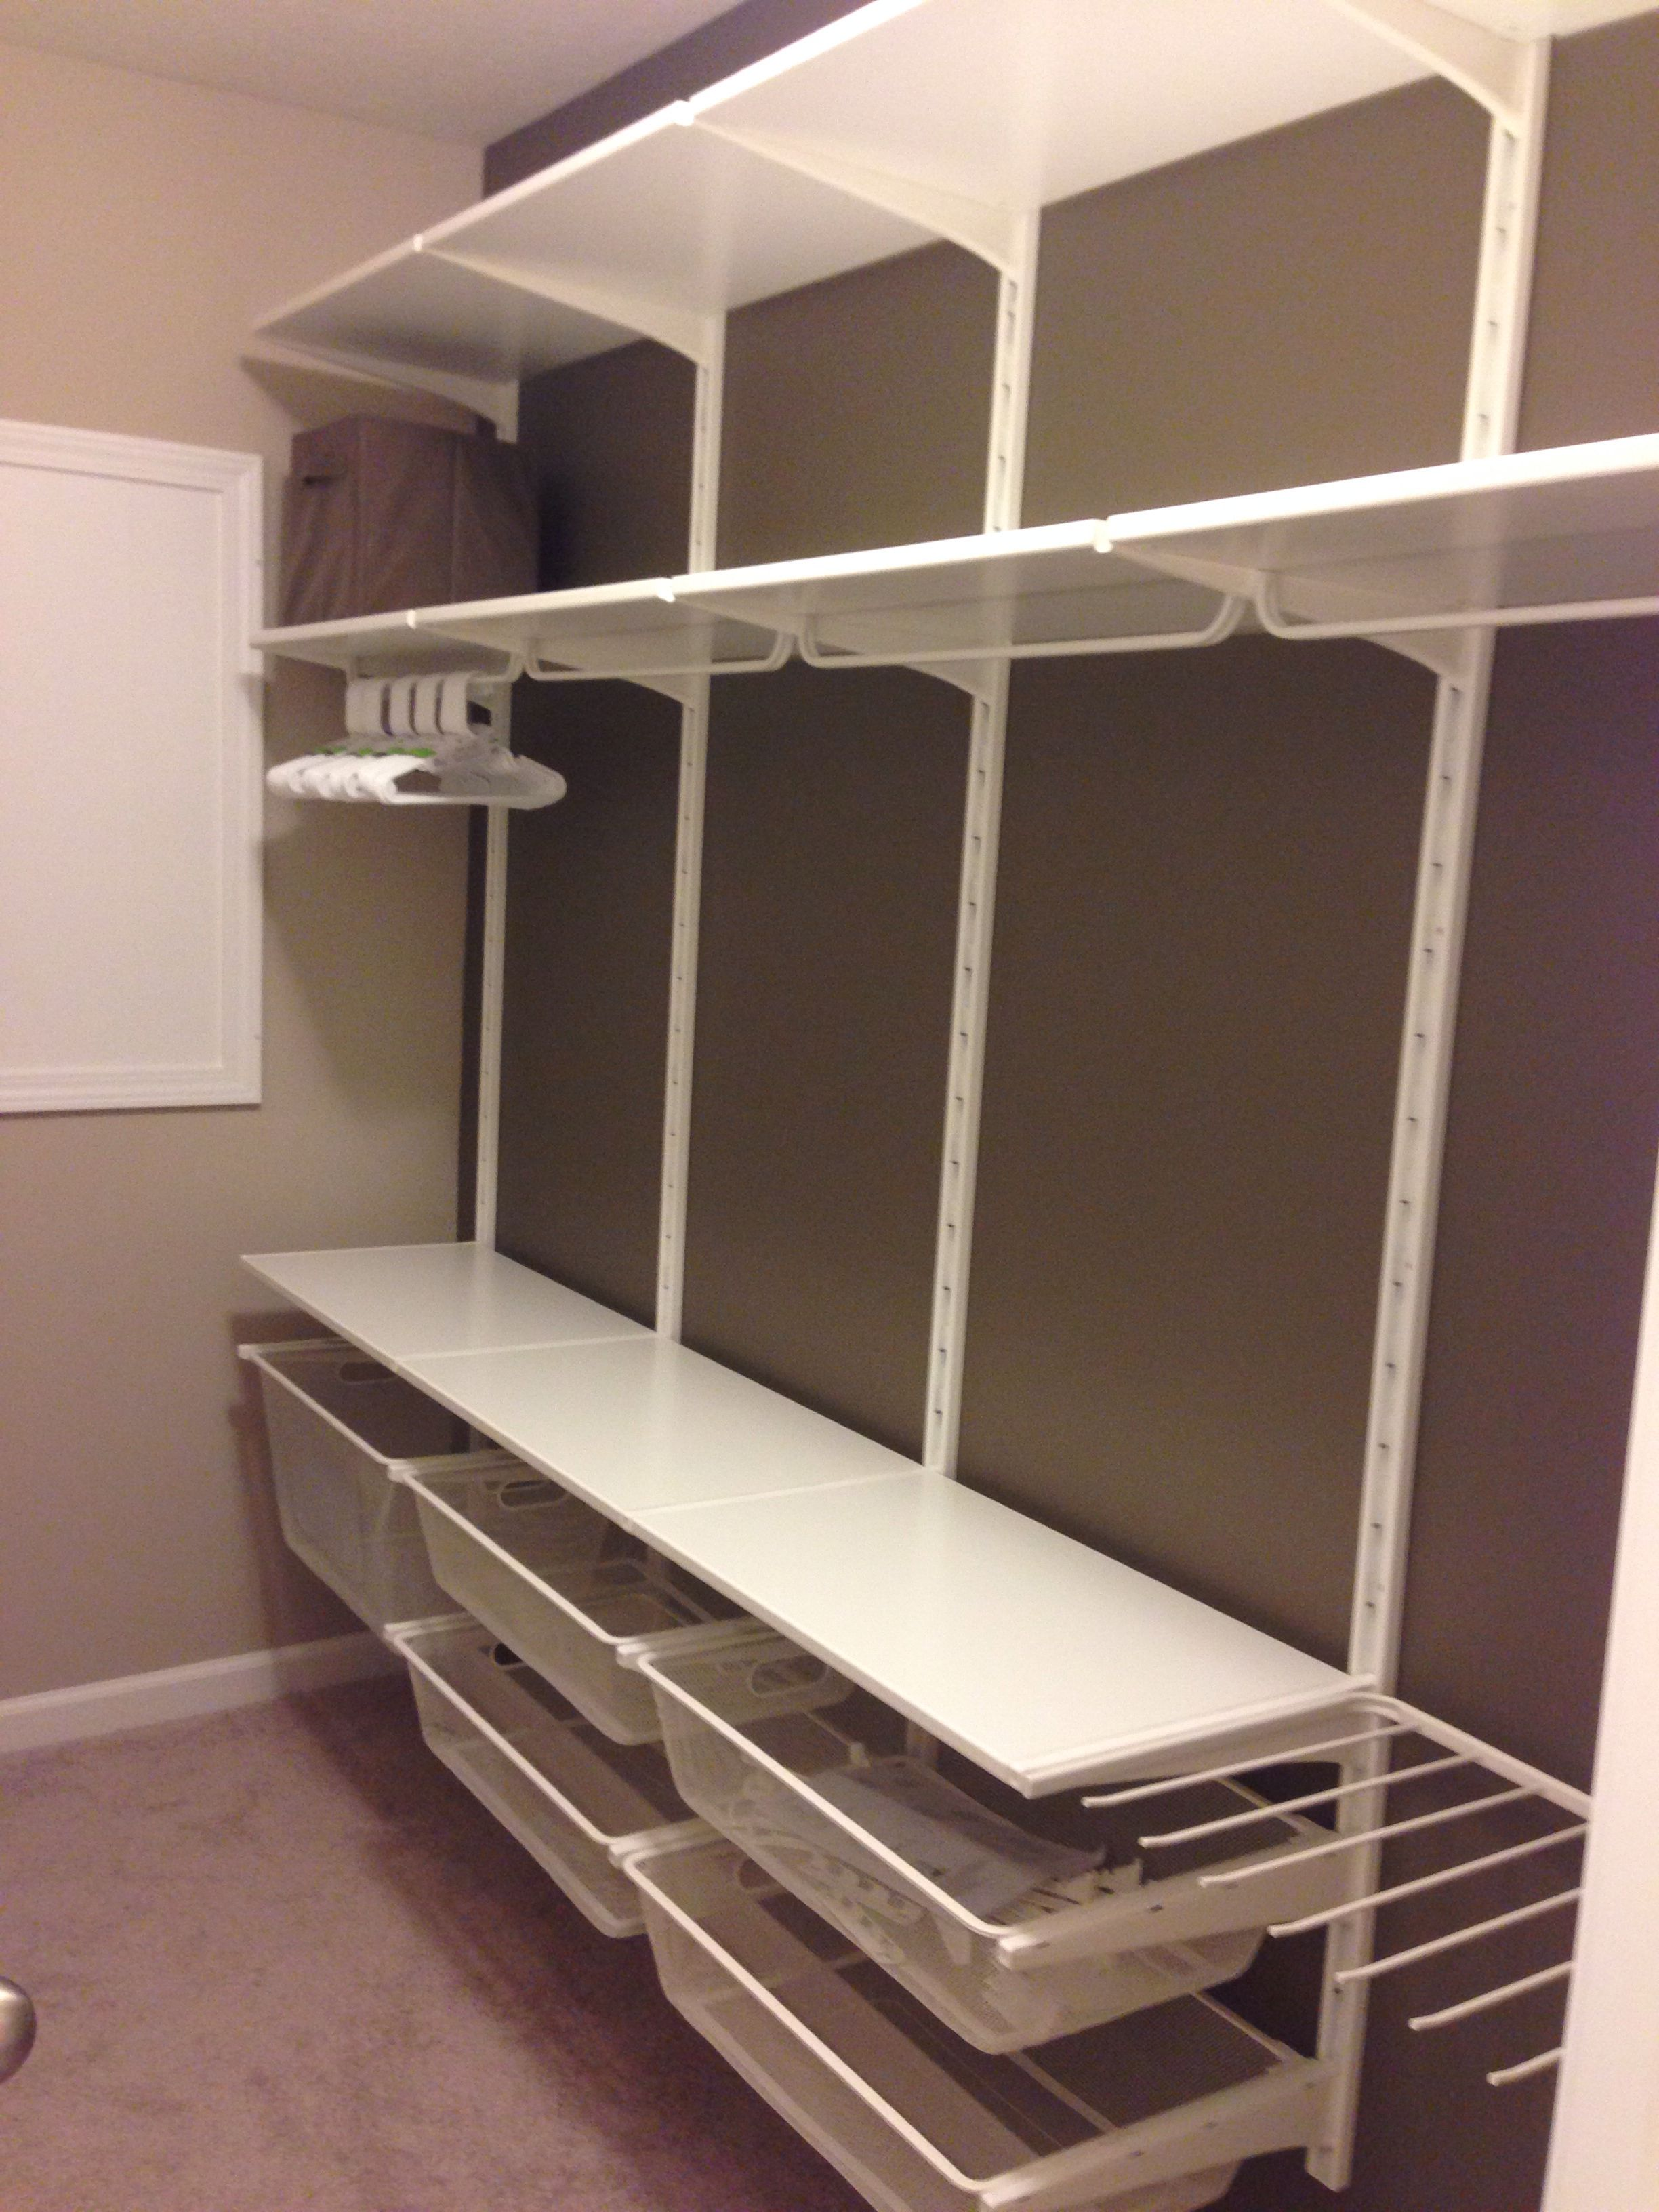 ikea cool in closet furniture plastic affordable units shelves with full photo shelf unit drawers organizers storage and